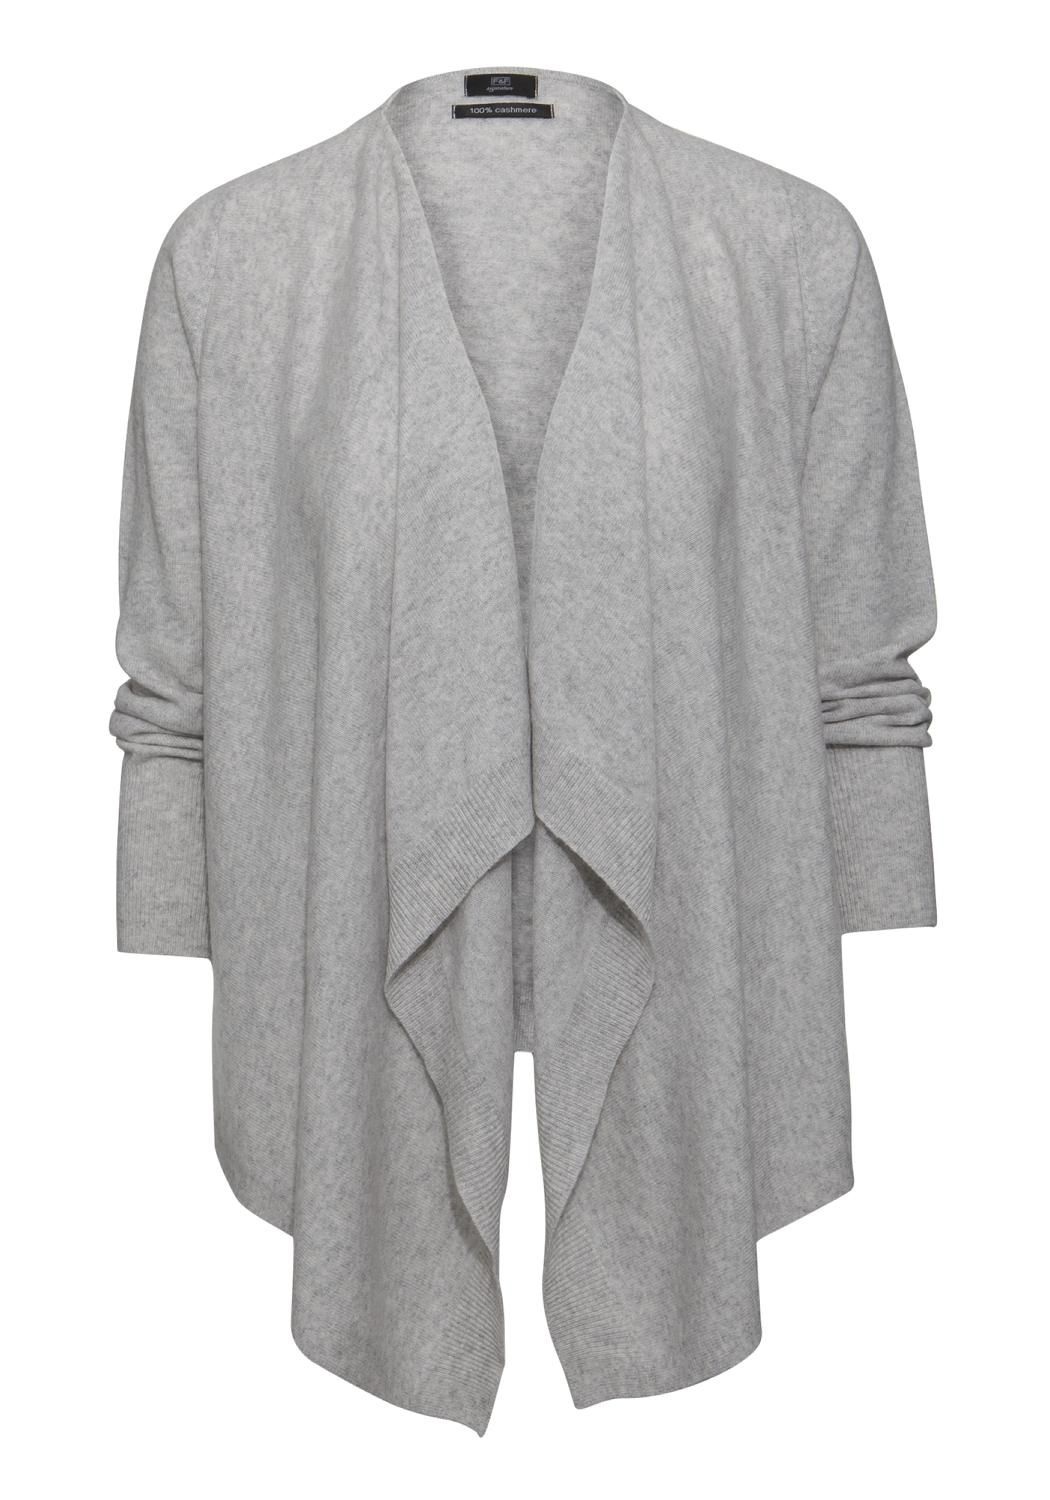 tesco pure cashmere waterfall cardigan | 2015 purchases | Pinterest